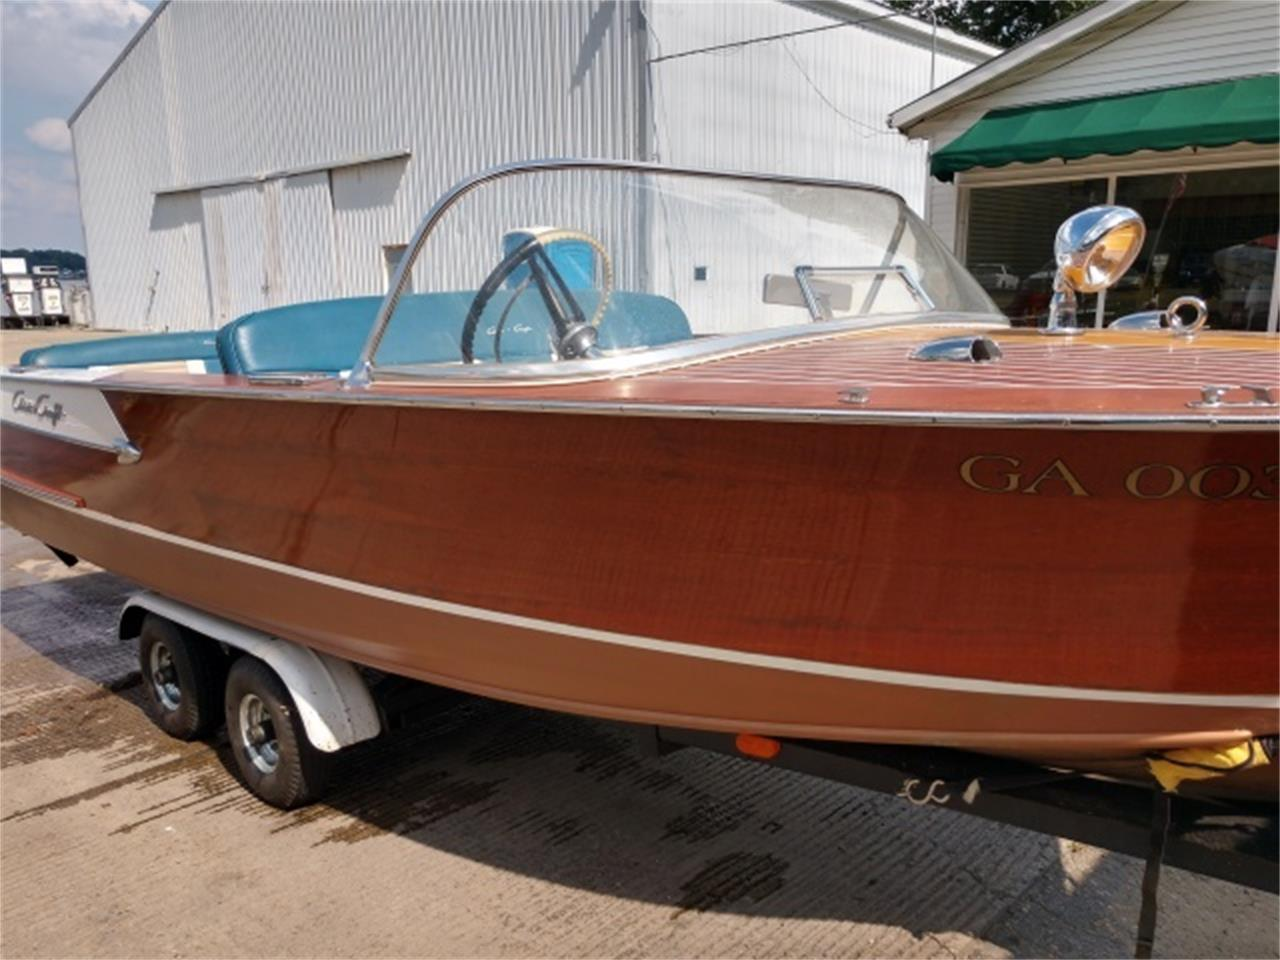 For Sale: 1961 Chris-Craft Boat in Fort Wayne, Indiana